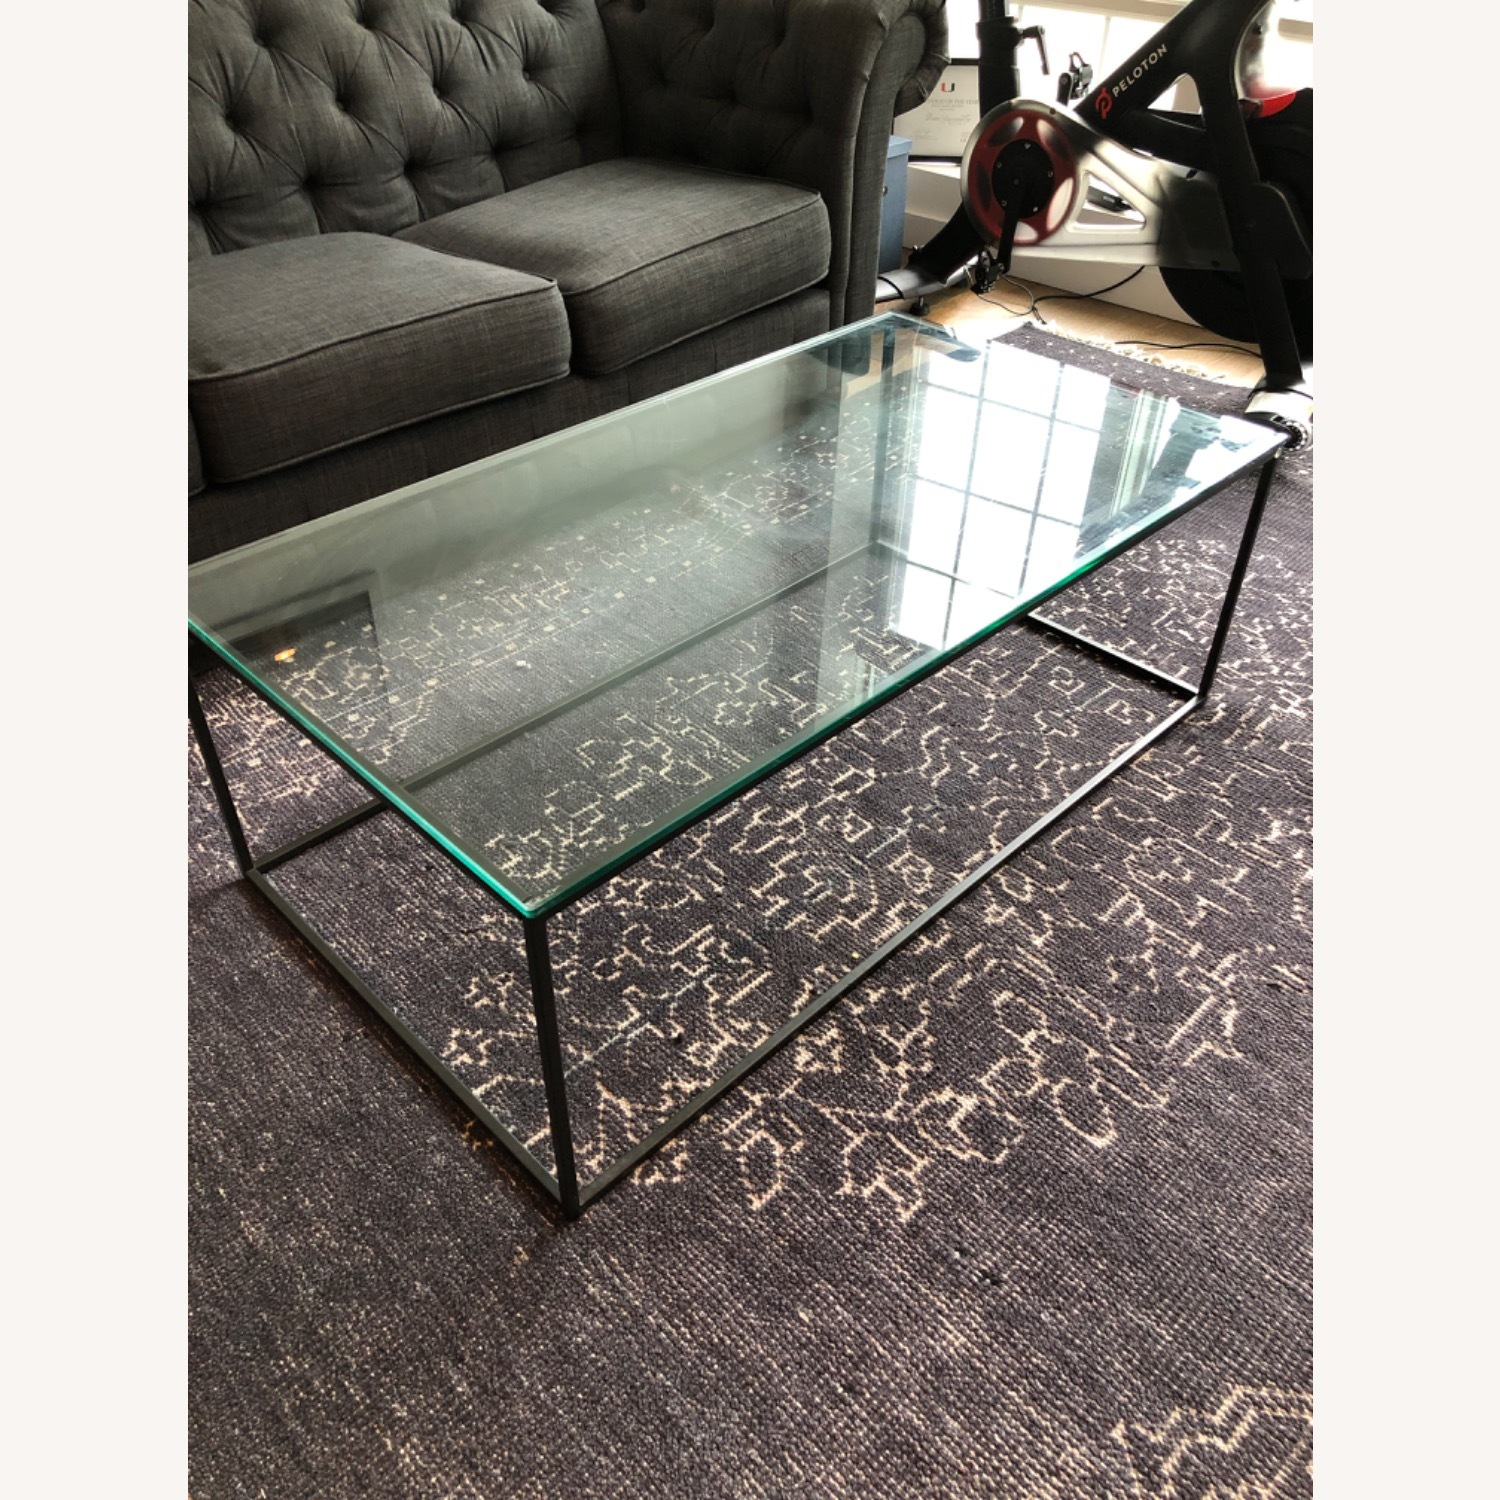 West Elm Streamline Coffee Table - Glass/Metal - image-2